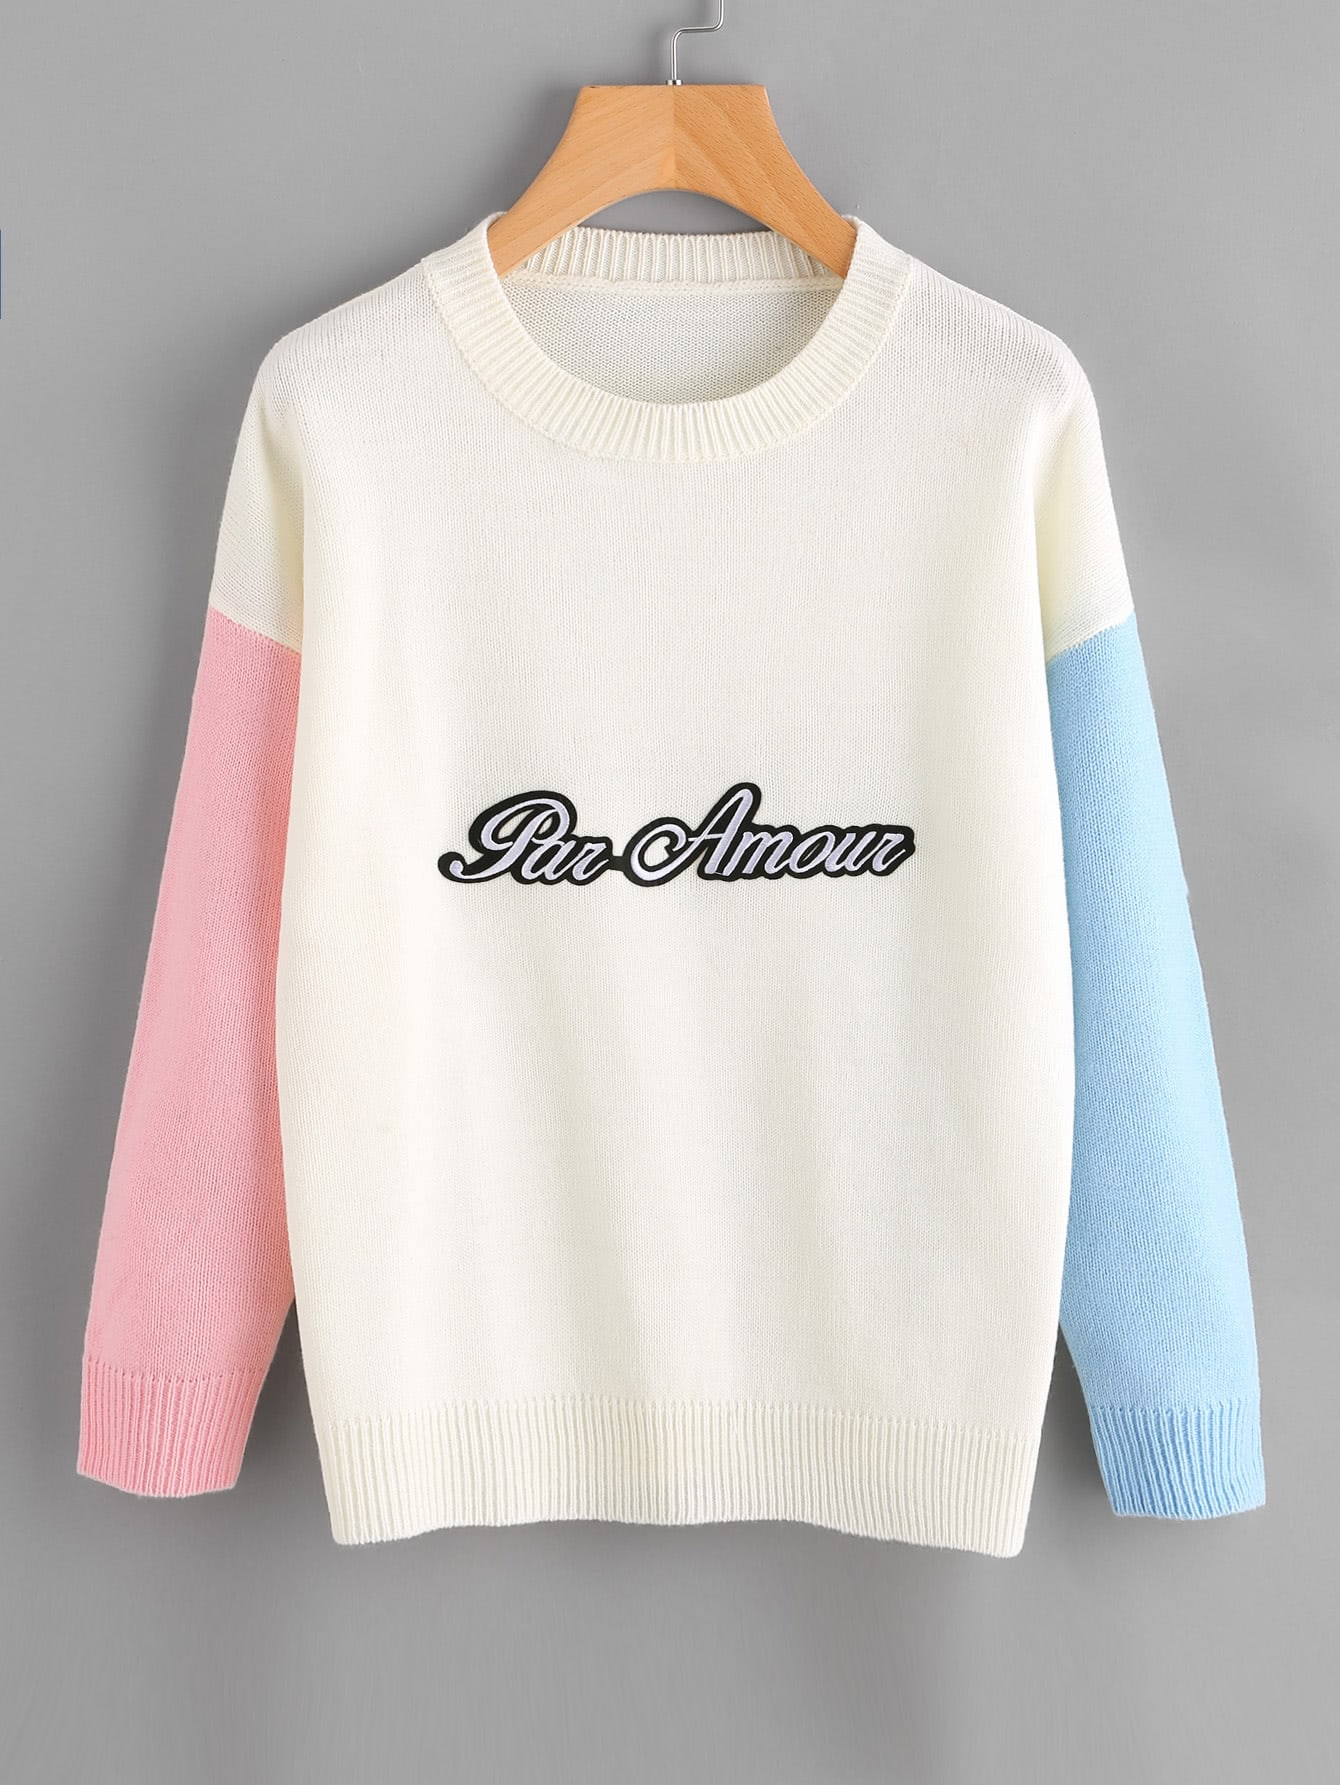 Letter Patch Contrast Sleeve Jumper sweater170818450